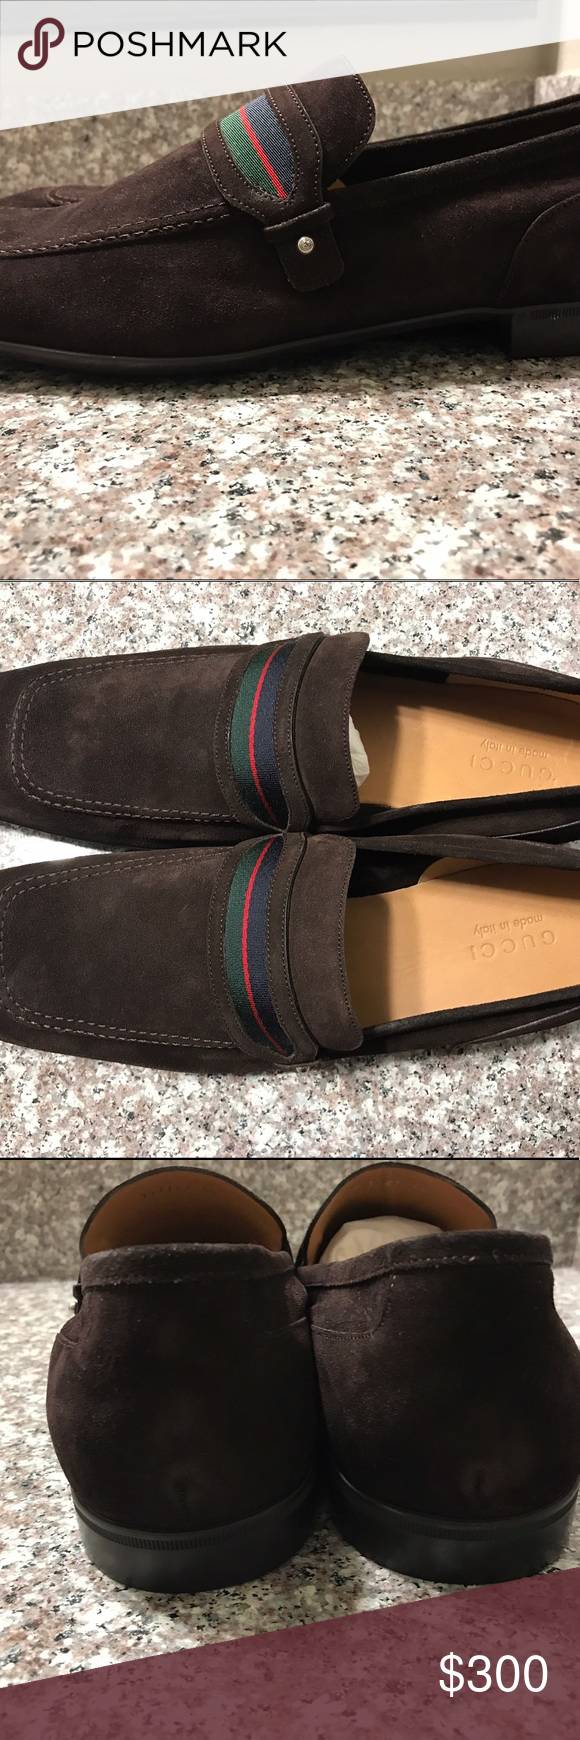 59006b48f Men's Gucci Loafers Chocolate Size 14 Men's Gucci Loafers Size 14 Chocolate  Never Worn Brand New Shipping (2-3 days) Gucci Shoes Loafers & Slip-Ons